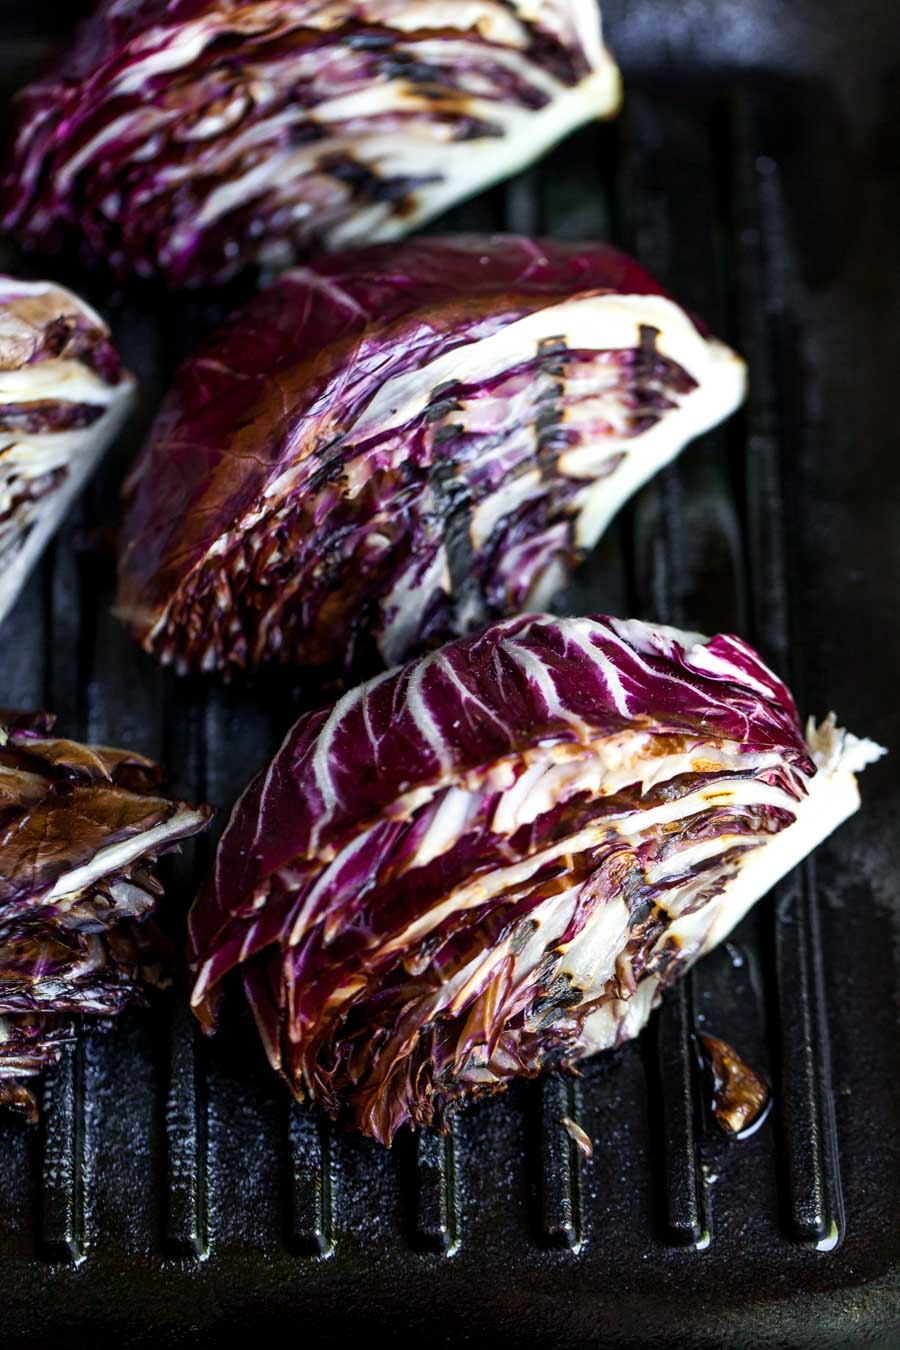 How to Grill Radicchio on Indoor Grill Pan